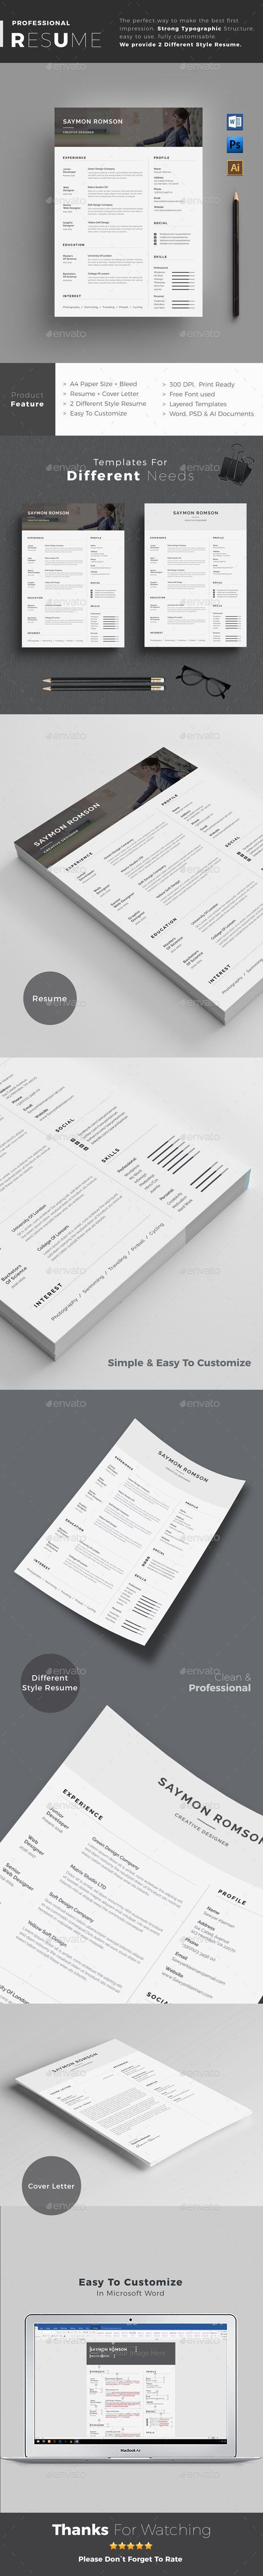 How To Make A Resume In Word Resume Resume Word Template  Cv Template With Super Clean And .